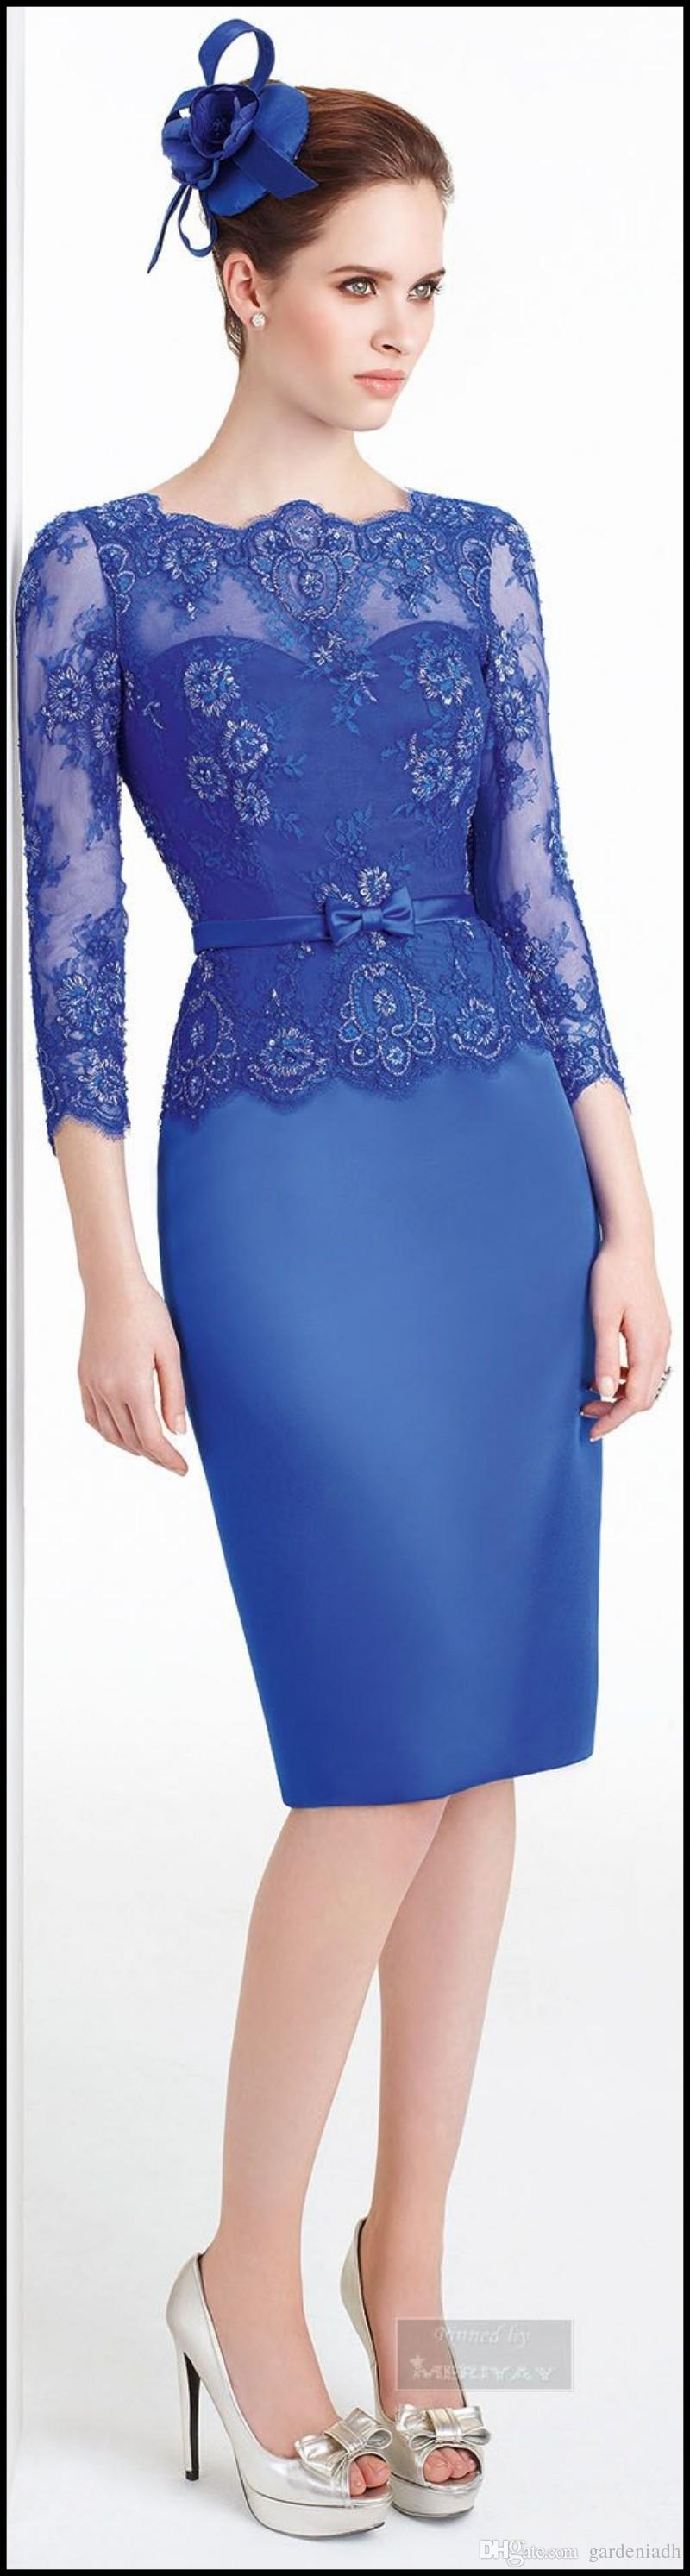 16w Mother Of The Bride Dresses Discount Wedding Dresses